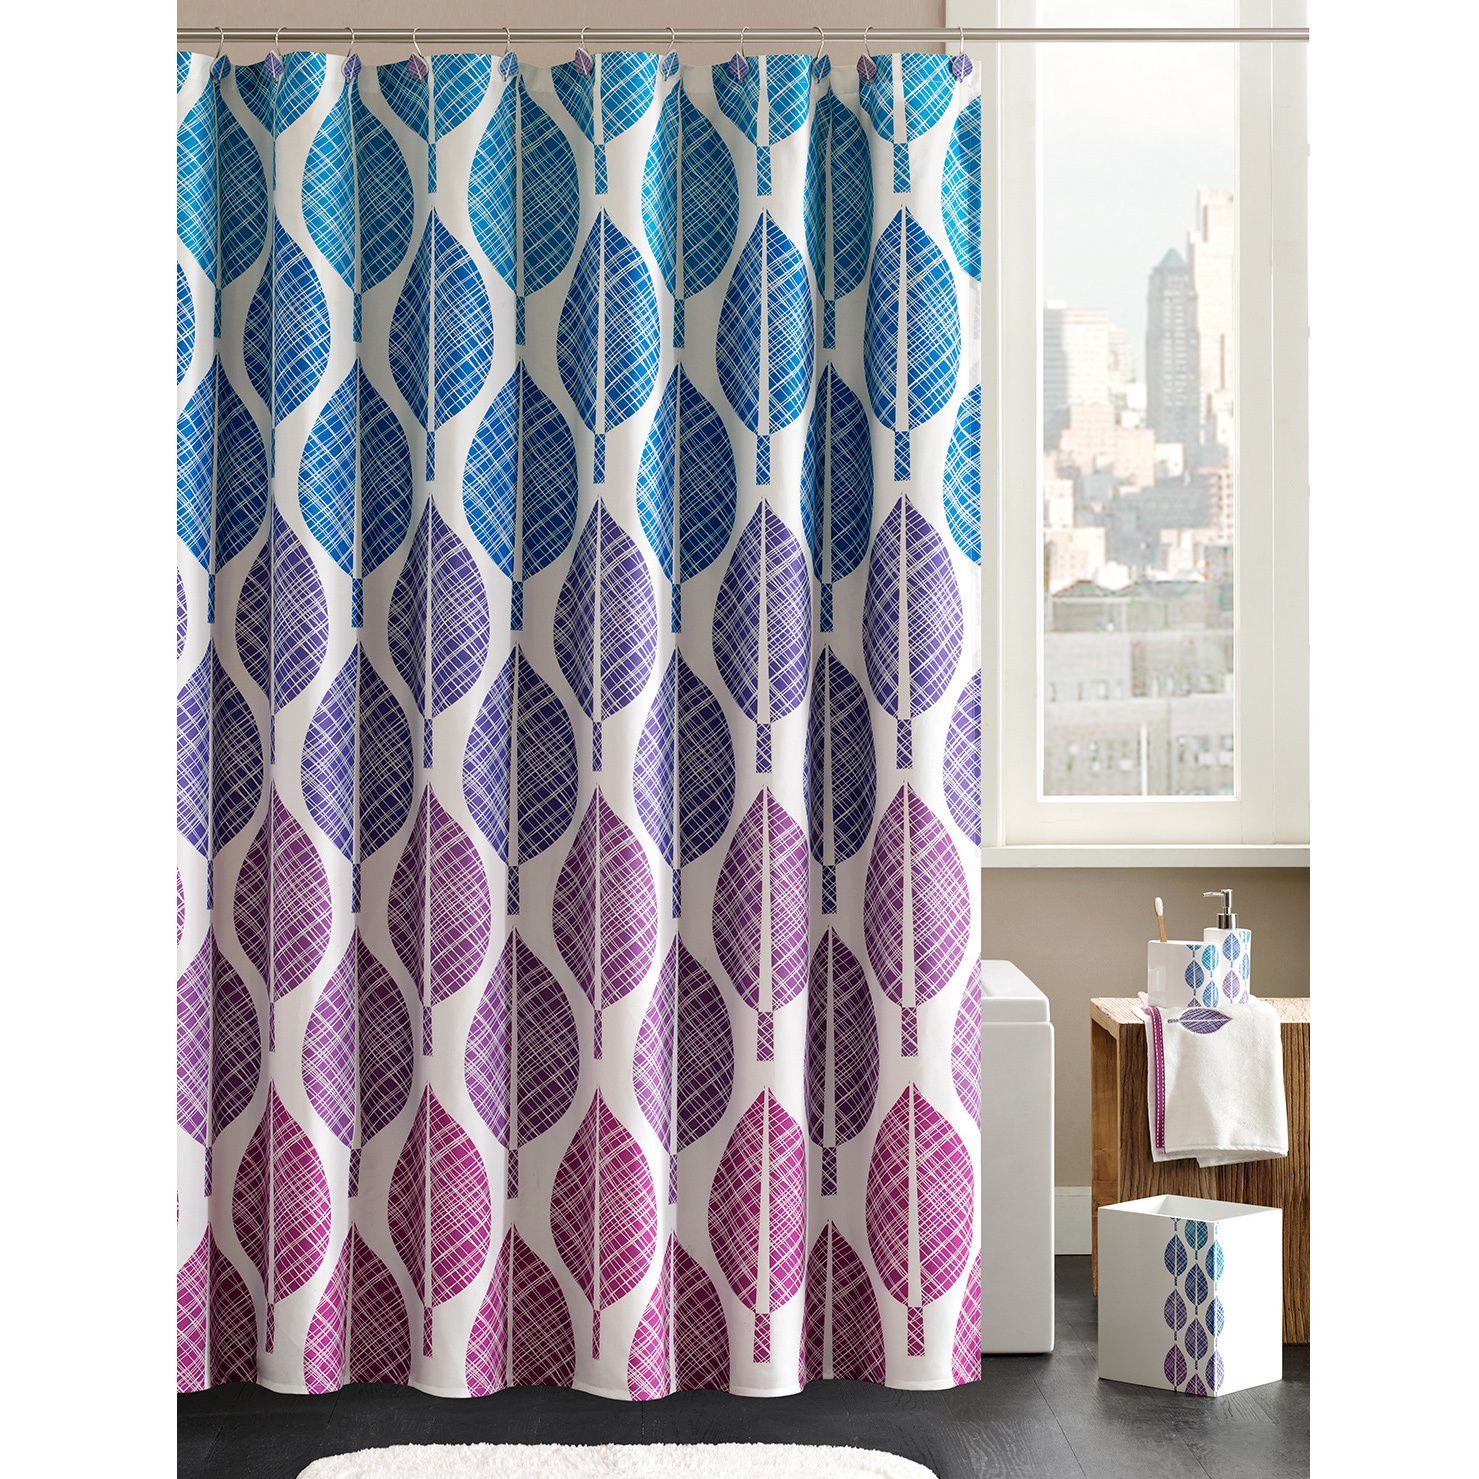 Spruce up your bathroom with this shower curtain set from Madison Park. With a gradient color scheme of blue, purple, and pink, this modern leaf-print shower curtain comes with coordinating shower curtain hooks and is machine-washable for easy care.